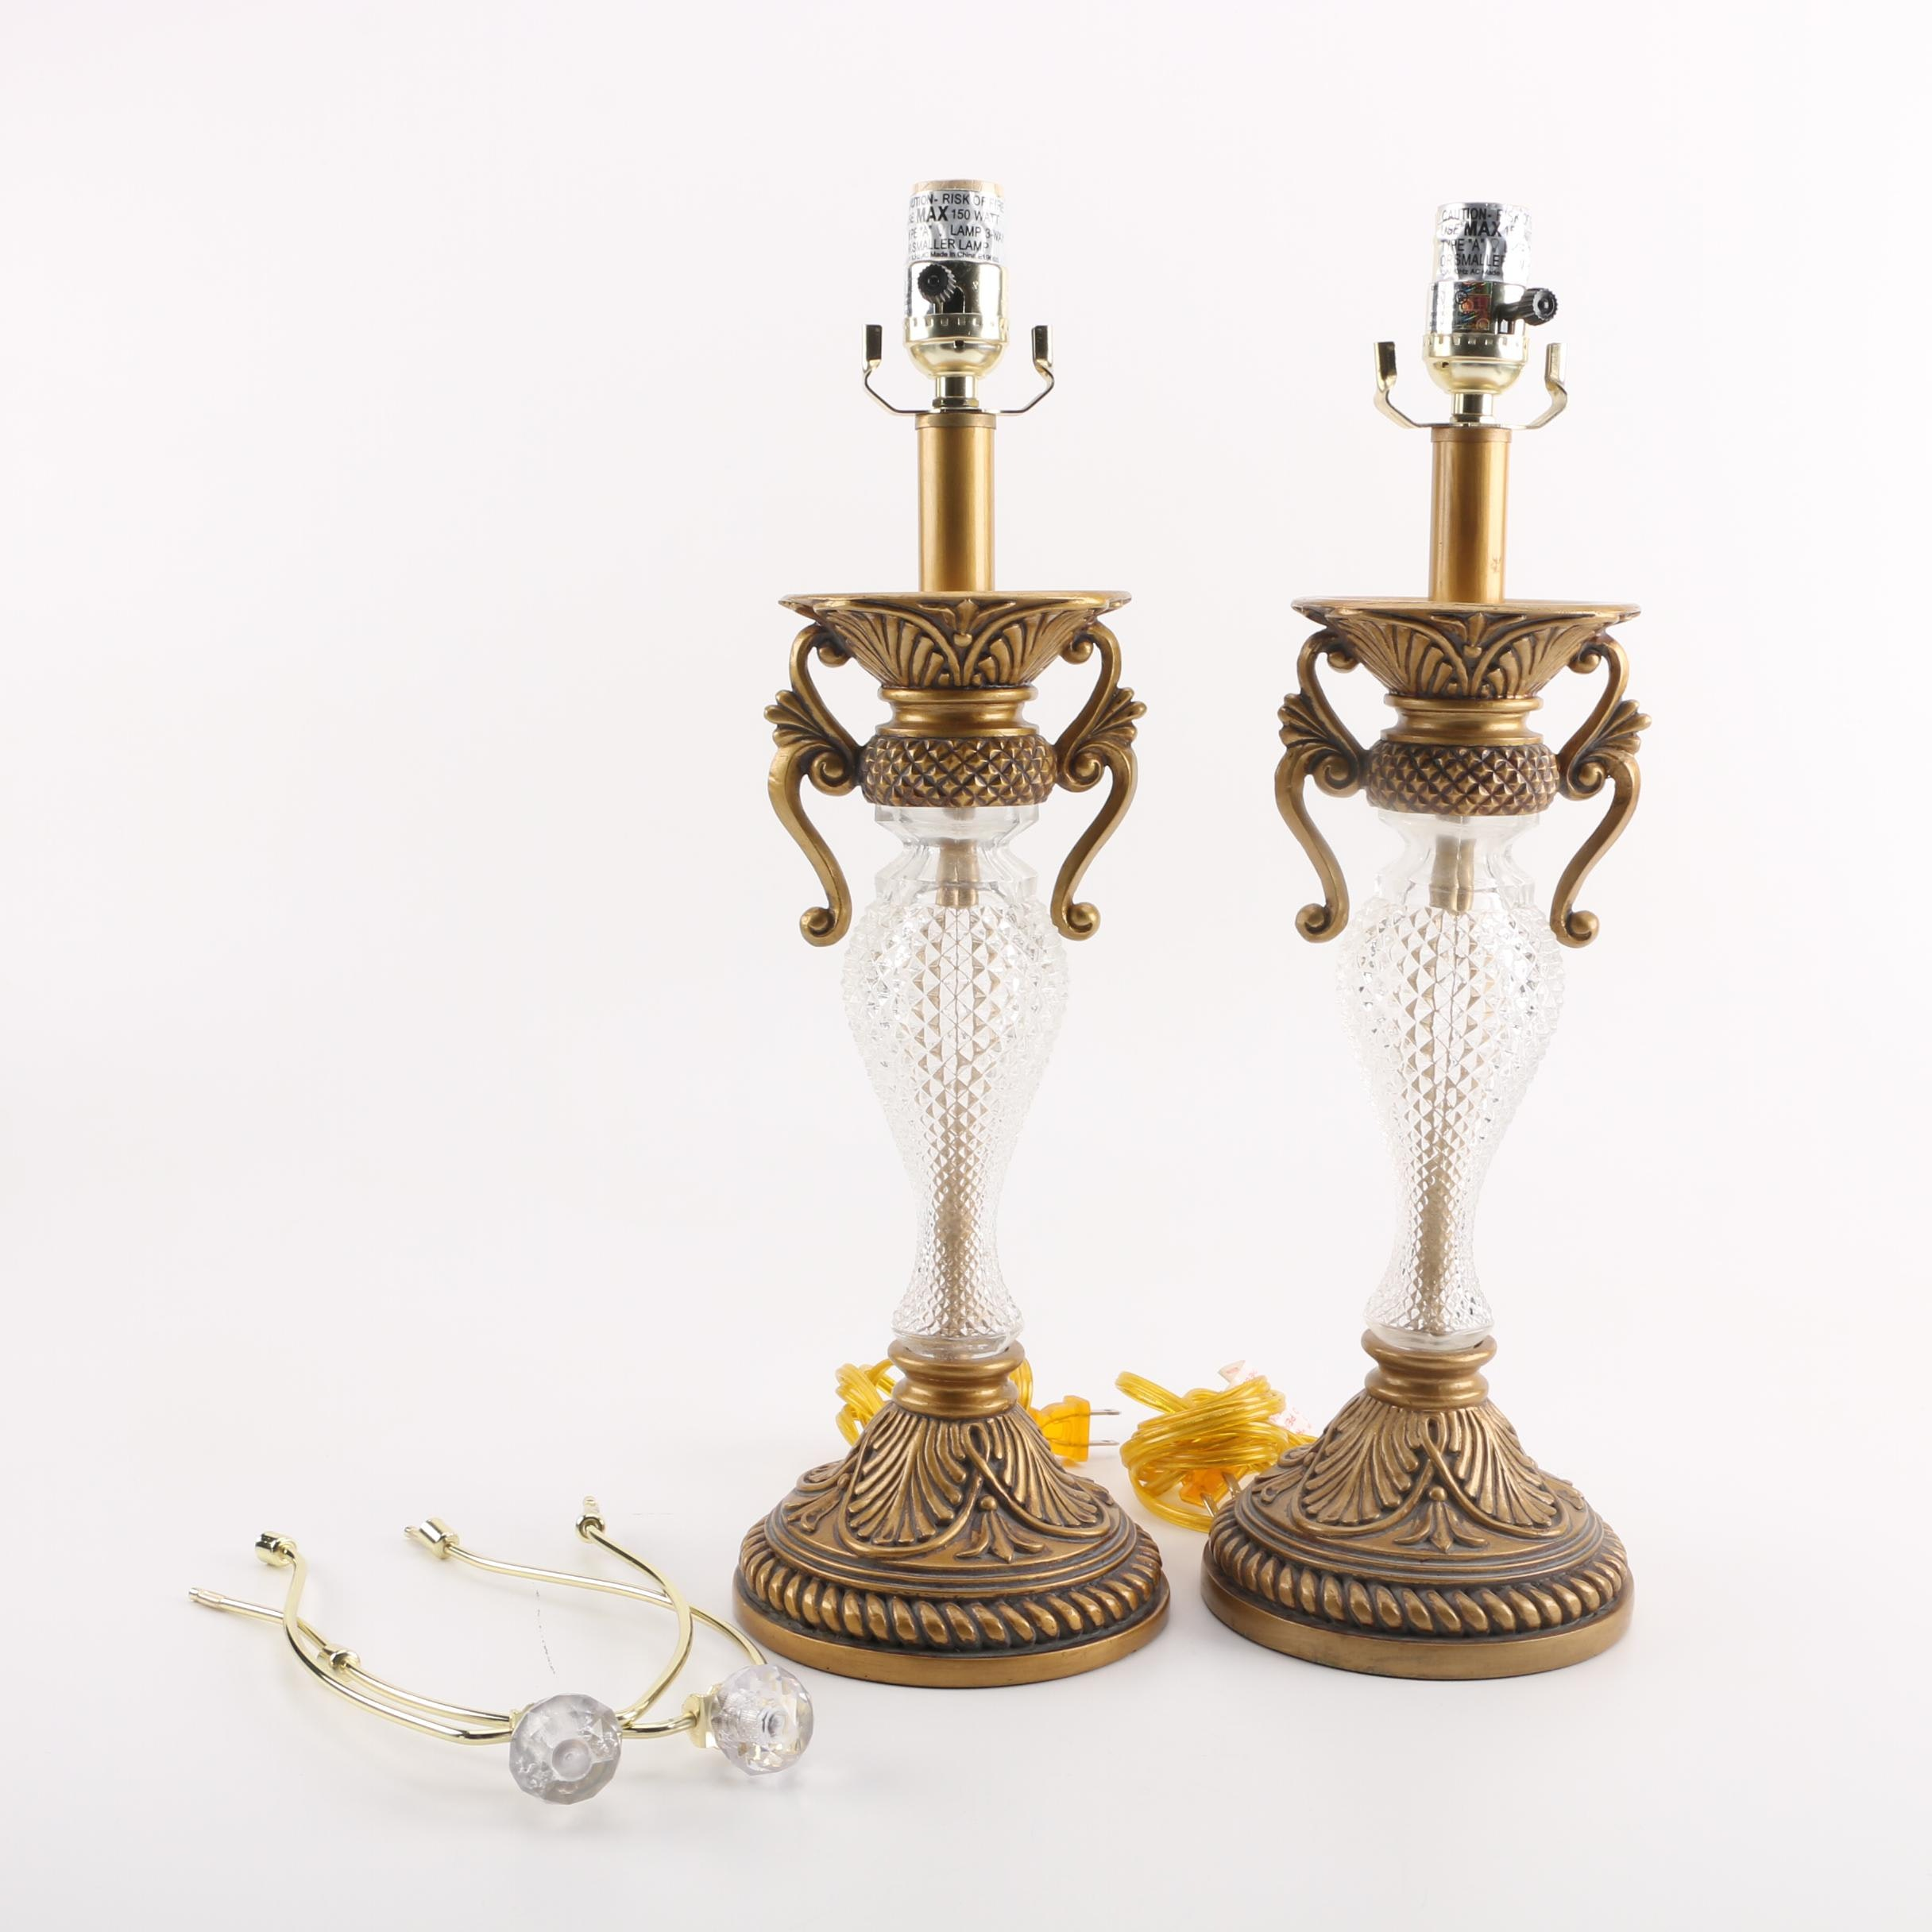 Pair of Ornate Glass Table Lamps